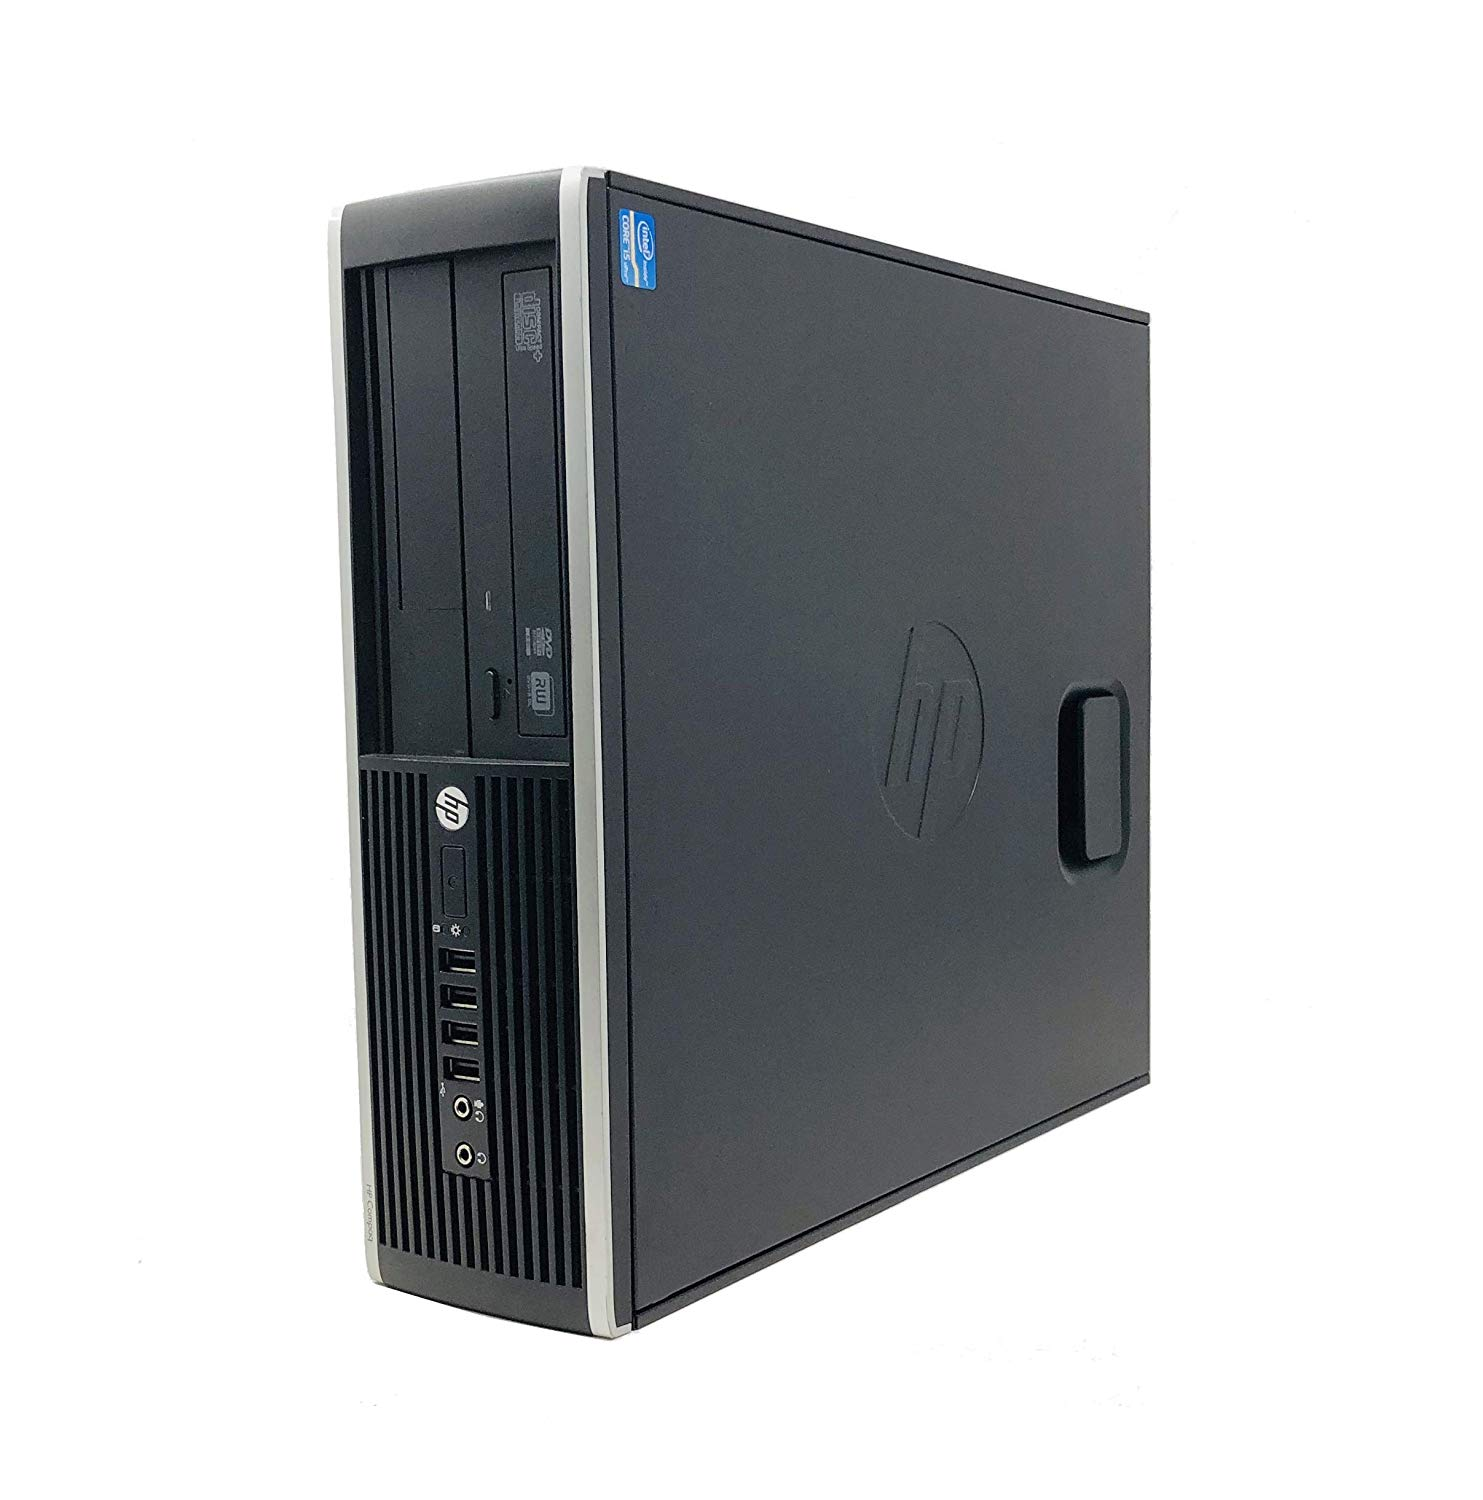 Hp Elite 8200 - Ordenador de sobremesa (<font><b>Intel</b></font> <font><b>i5</b></font>-<font><b>2400</b></font>, Sin lector 8GB de RAM, Disco SSD de 120GB , Windows 10 PRO ) - Negro (Reacondicionado) image